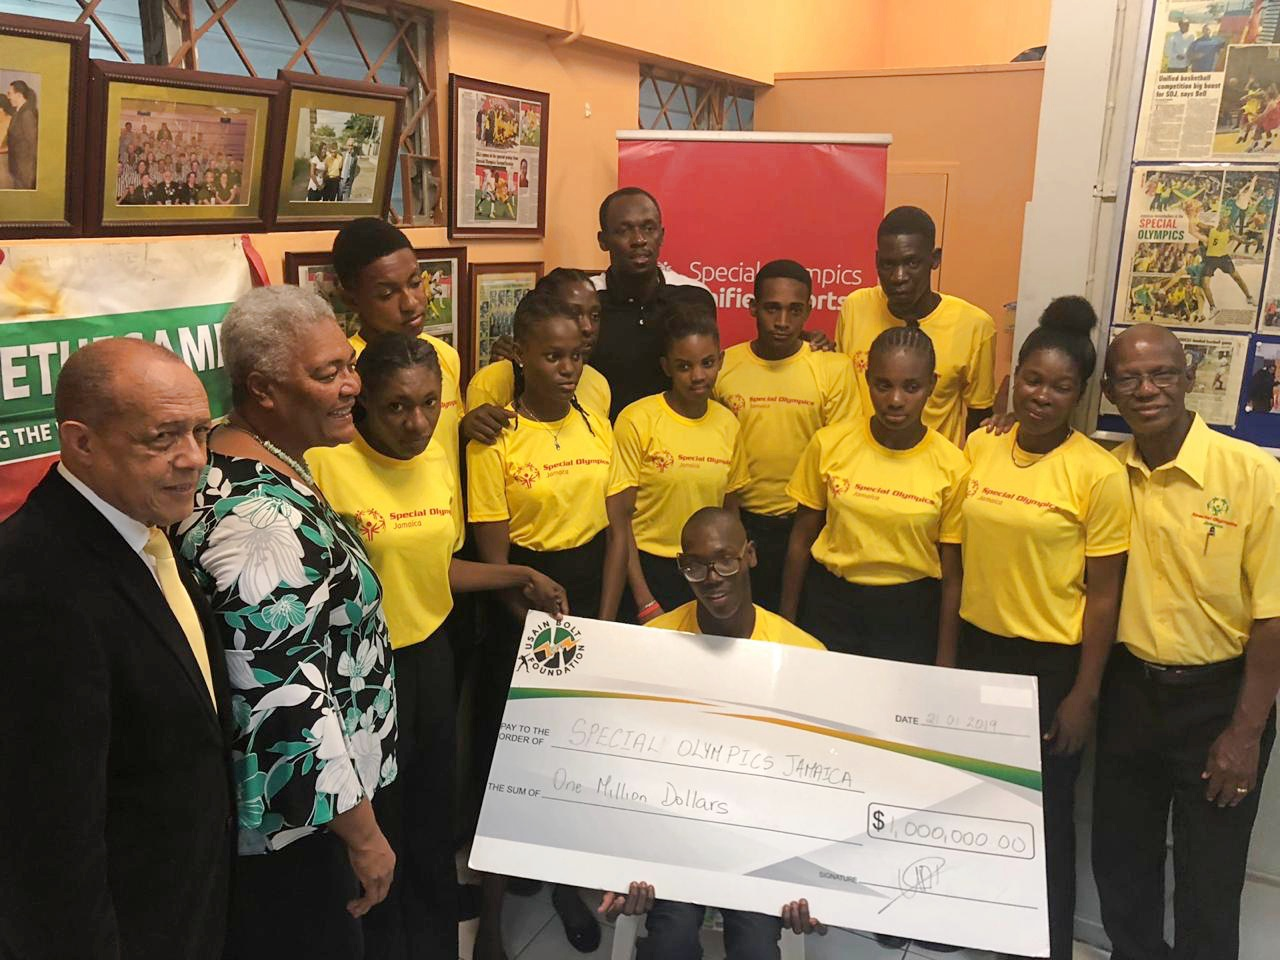 UBF sponsors Jamaican Special Olympic Team